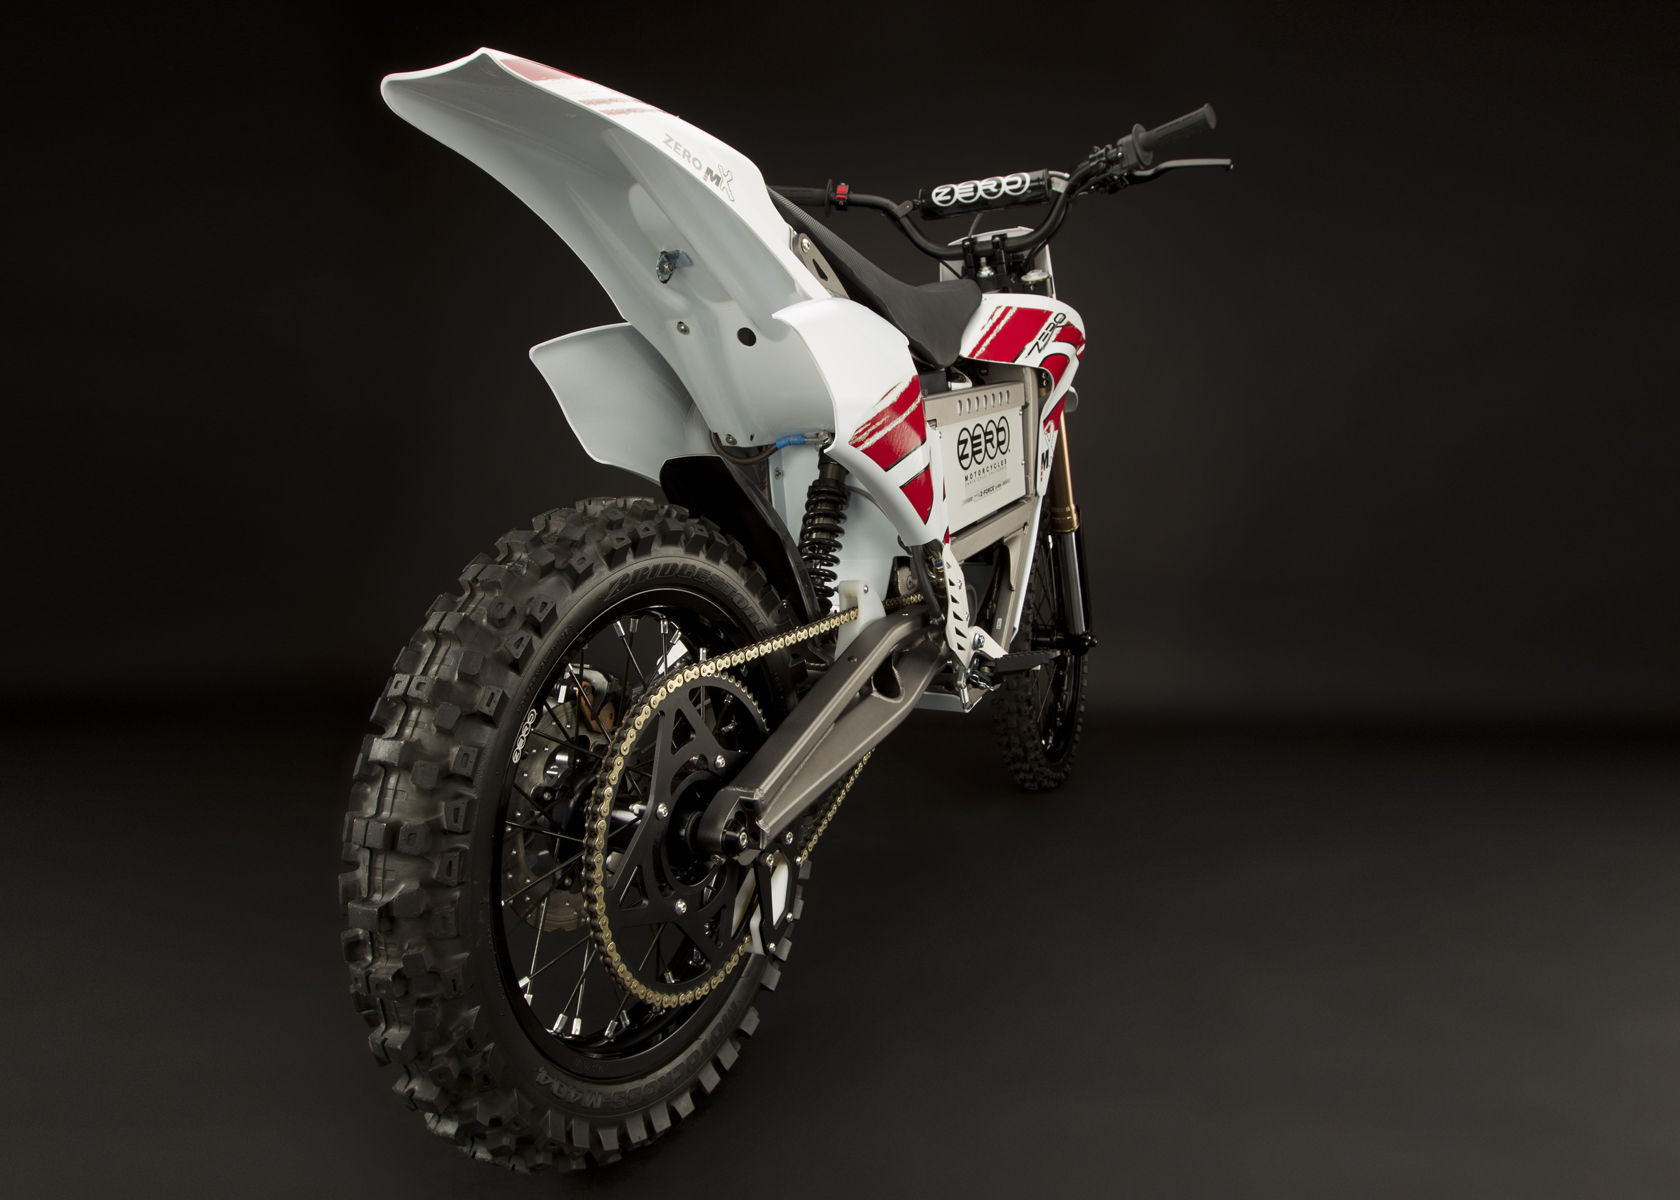 2011 Zero MX Electric Motorcycle: Drivetrain / Chain / Sprocket